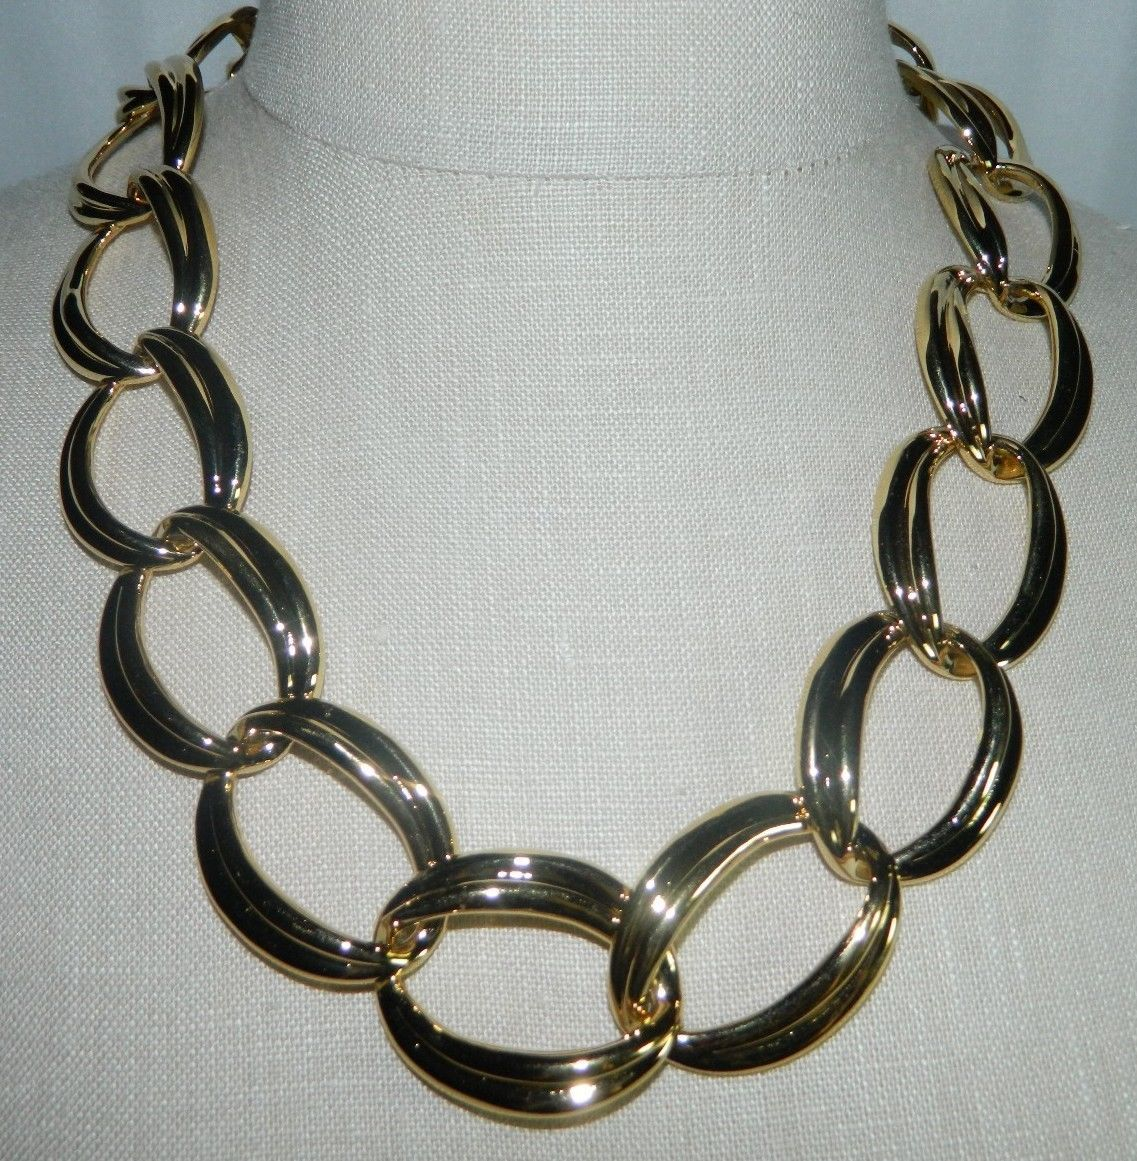 """VTG NOS NAPIER with Tags Heavy Gold Tone Chain Link Choker Necklace - 20/22"""""""